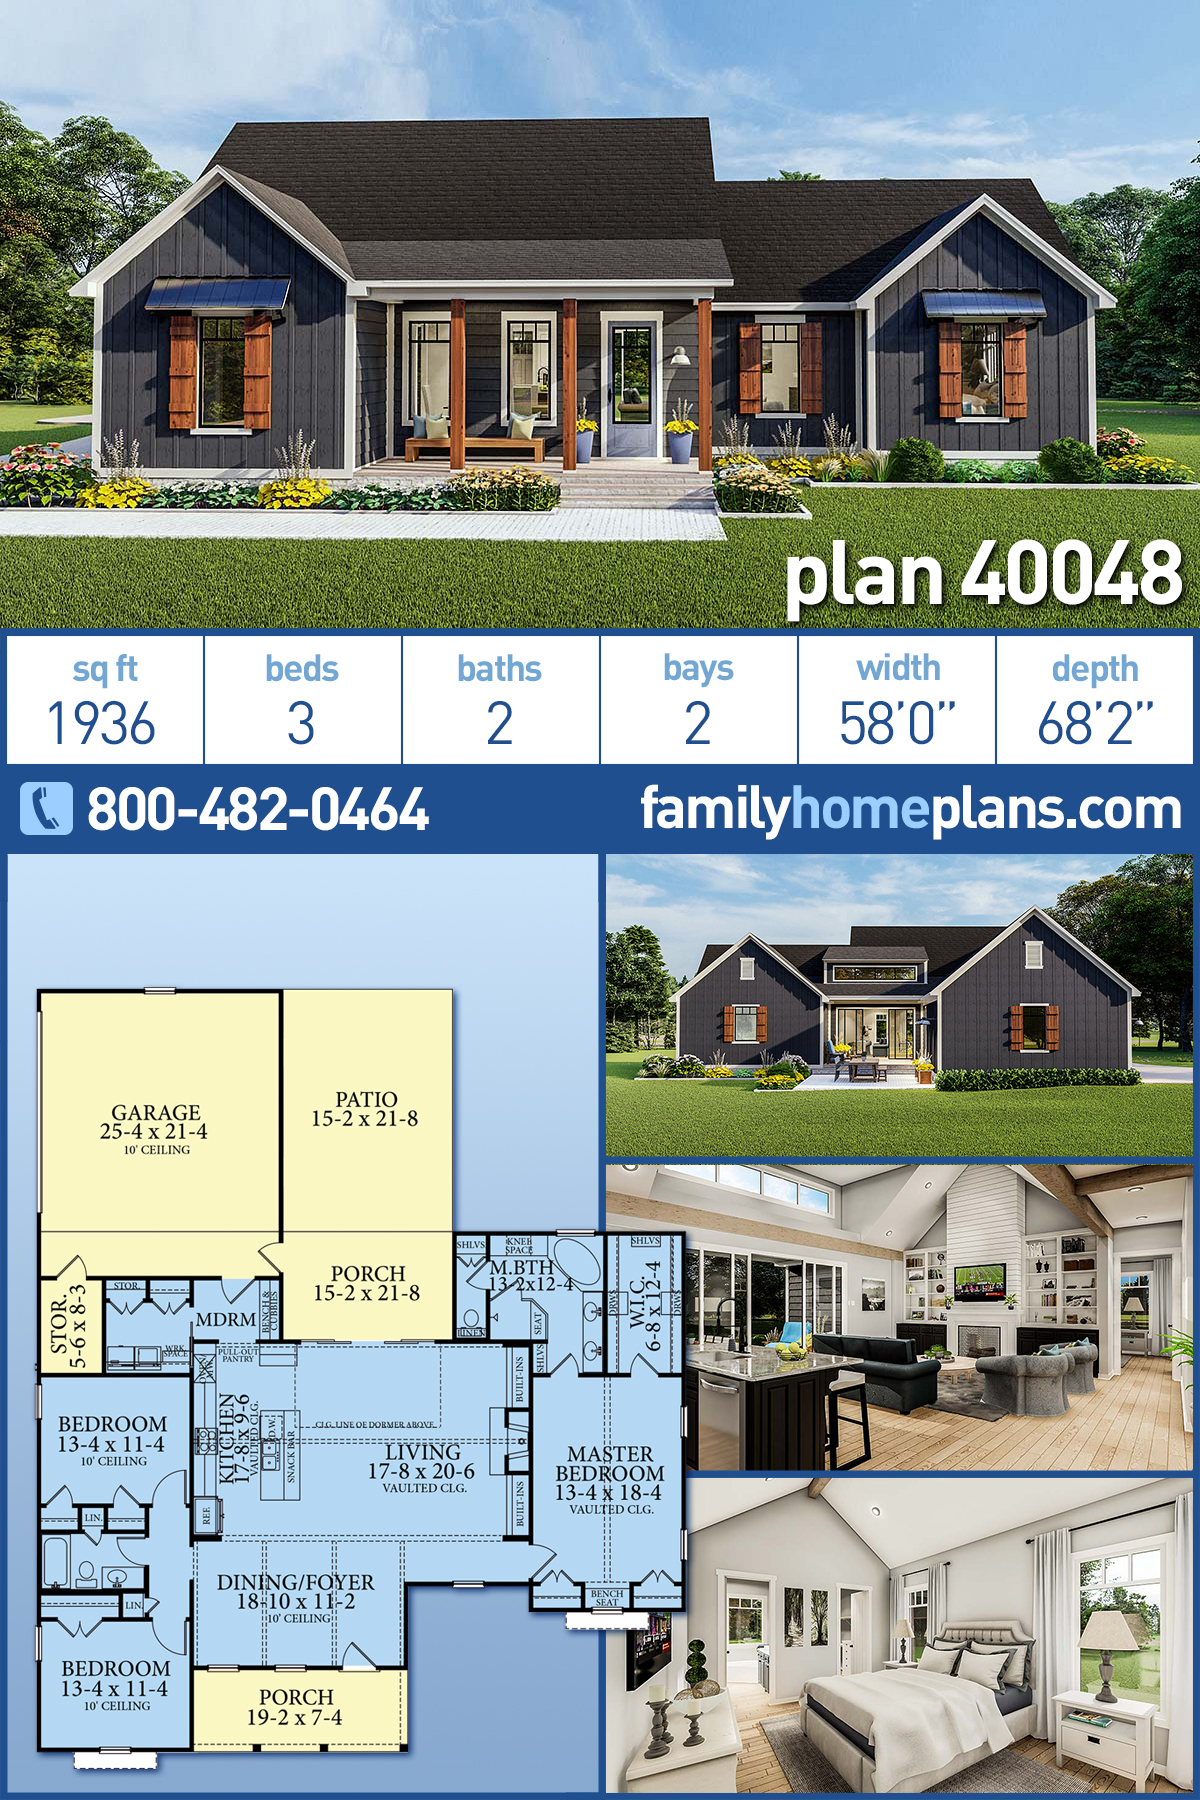 Cottage , Country , Craftsman , Farmhouse , Ranch , Southern , Traditional House Plan 40048 with 3 Beds, 2 Baths, 2 Car Garage